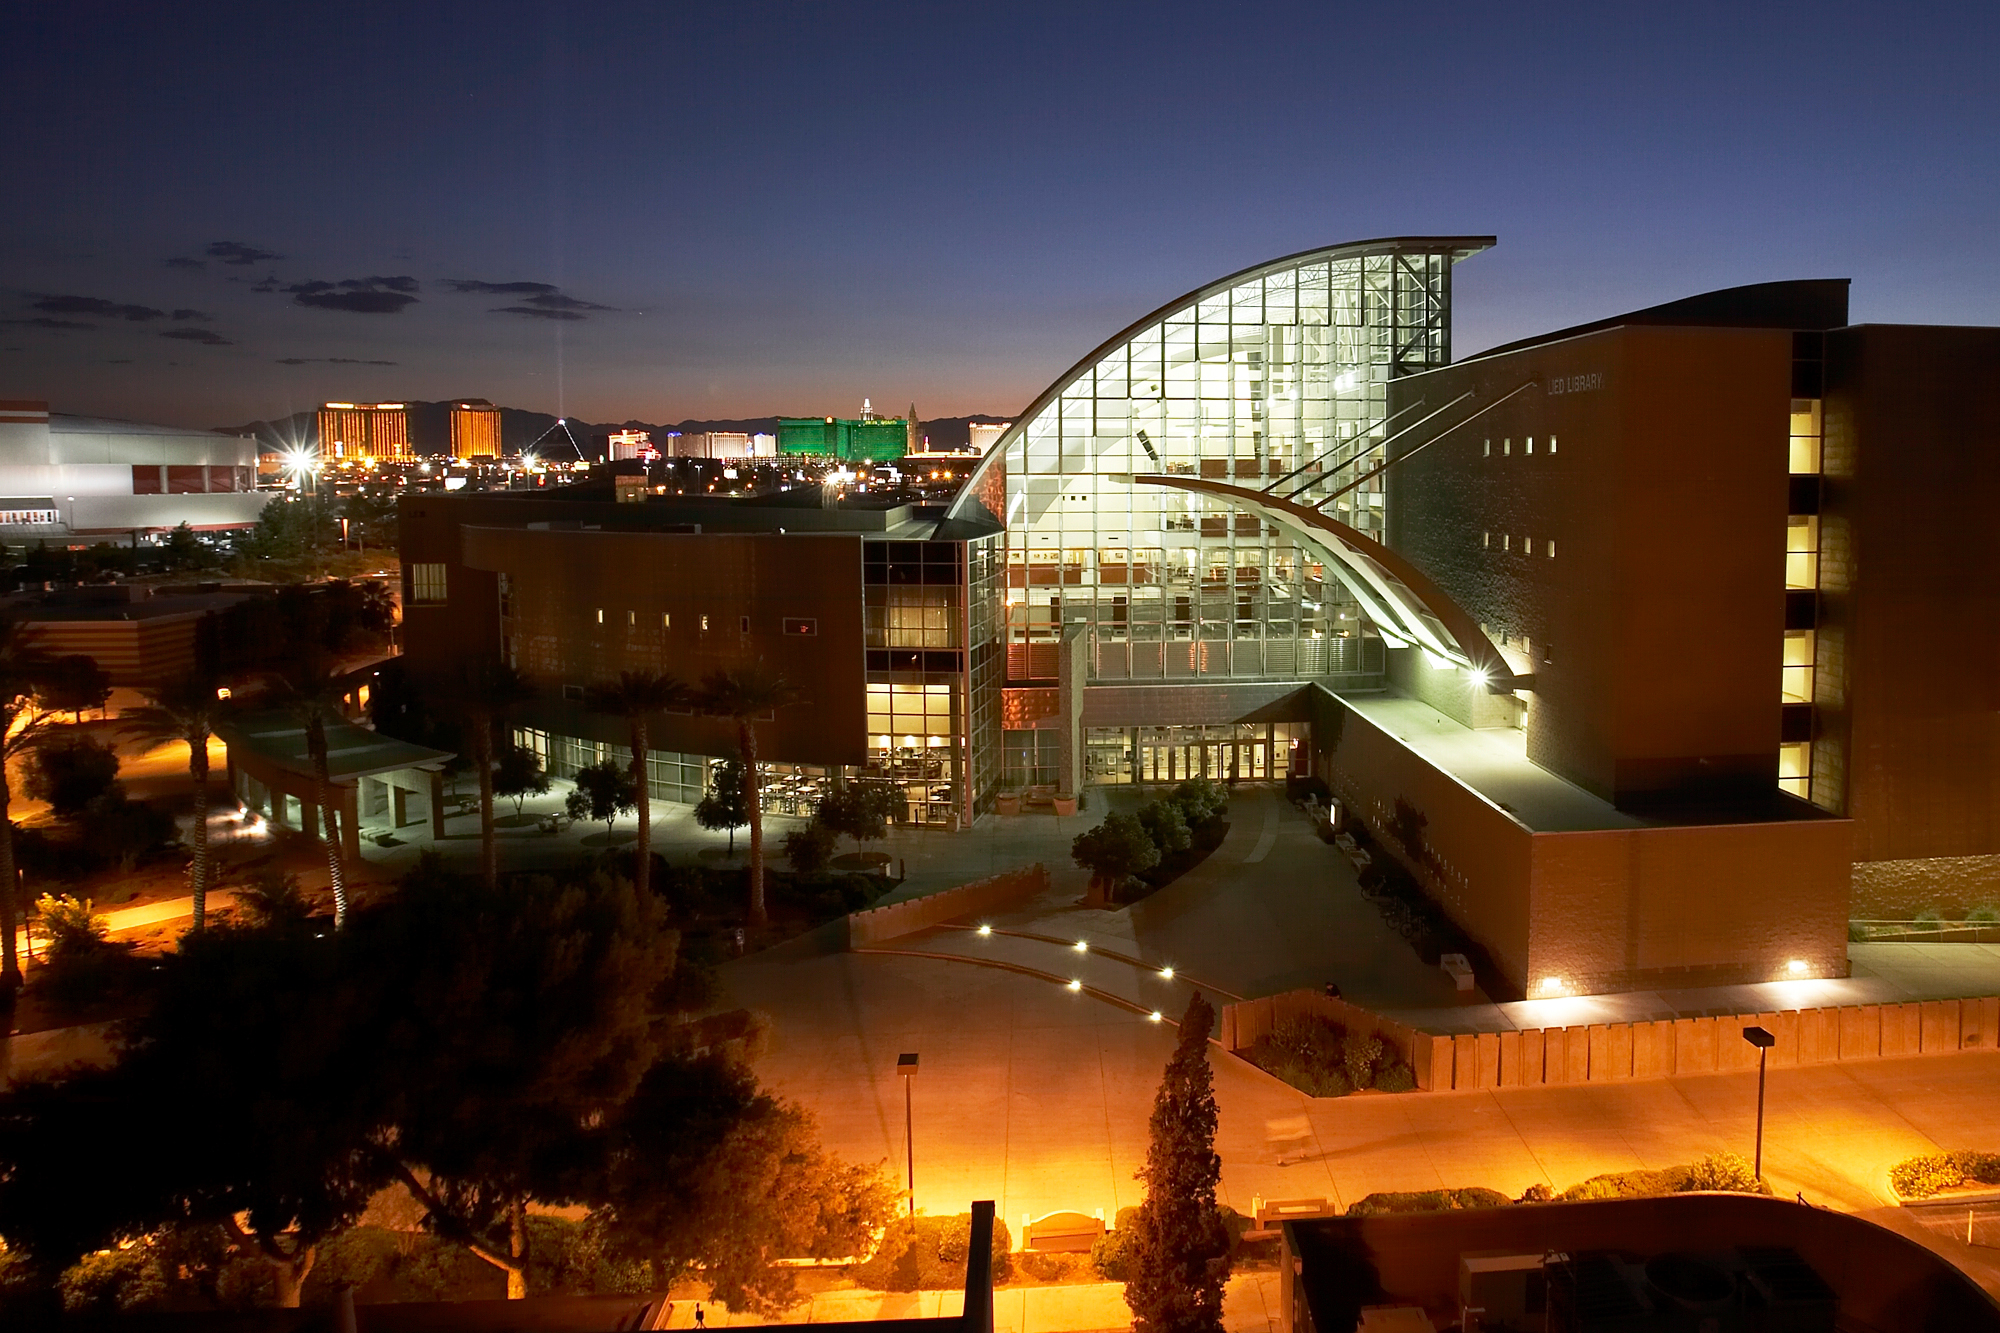 Night time shot of Lied Library, with Las Vegas Strip in background.